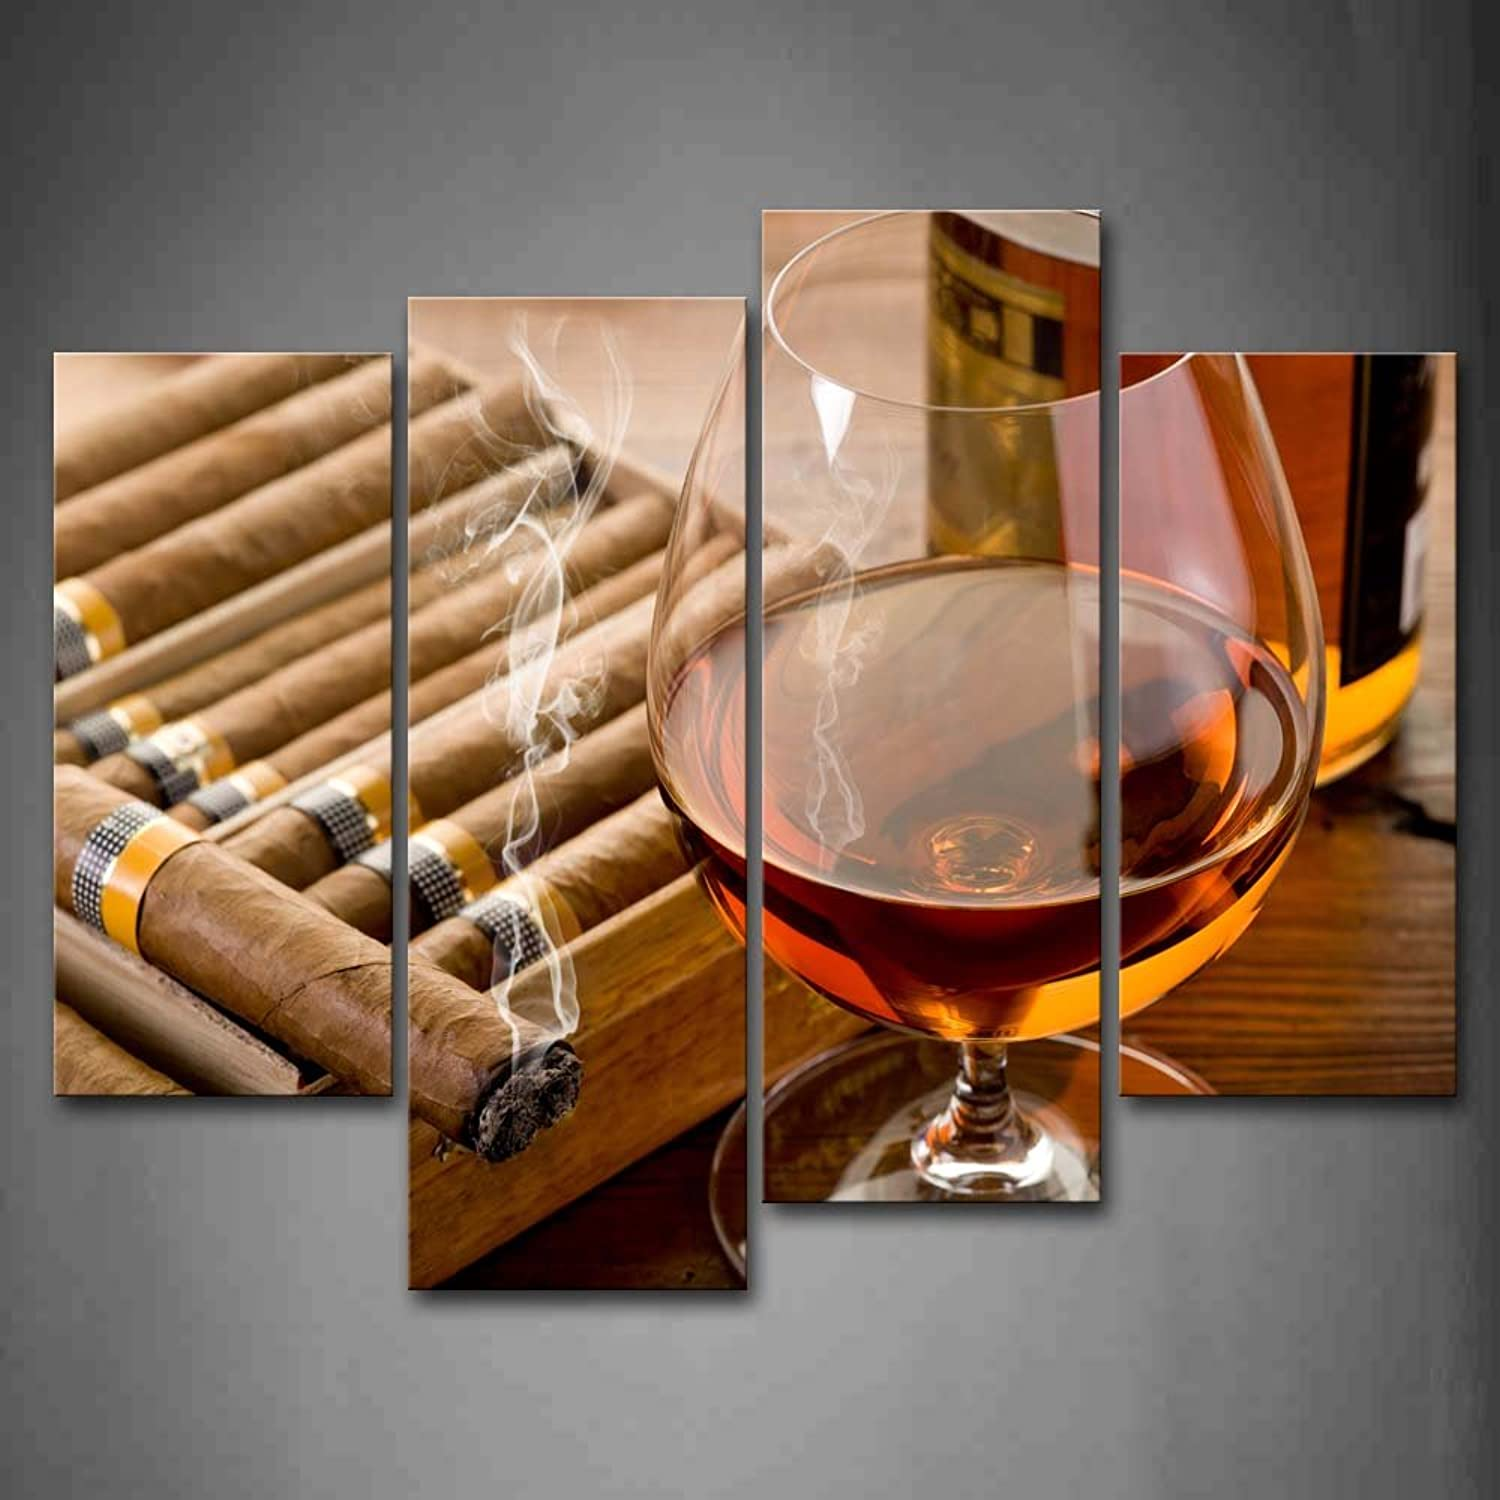 Brown Liquor In Cup With Cigar Wall Art Painting Pictures Print On Canvas Food The Picture For Home Modern Decoration